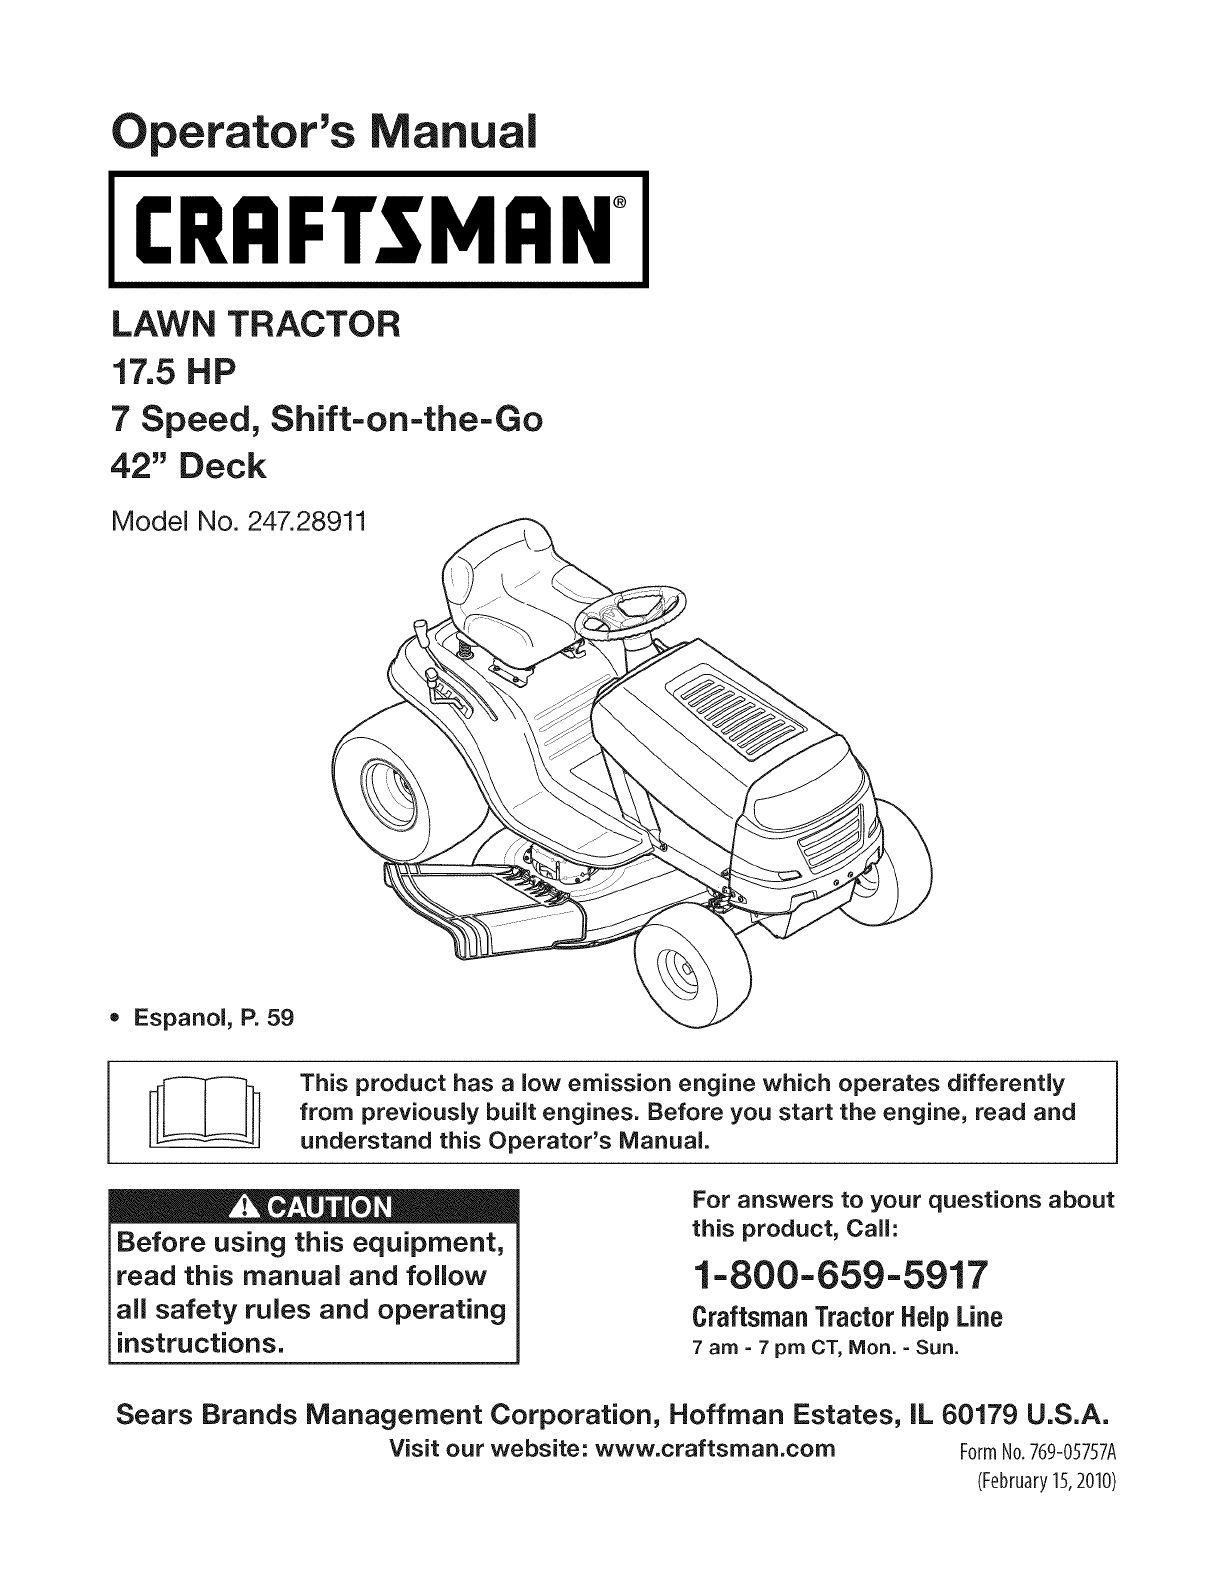 8e7b3384 e1d3 48fe bee0 c4dbc25d375e bg1 craftsman lawn mower 28911 user guide manualsonline com Craftsman RER 1000 Manual at virtualis.co